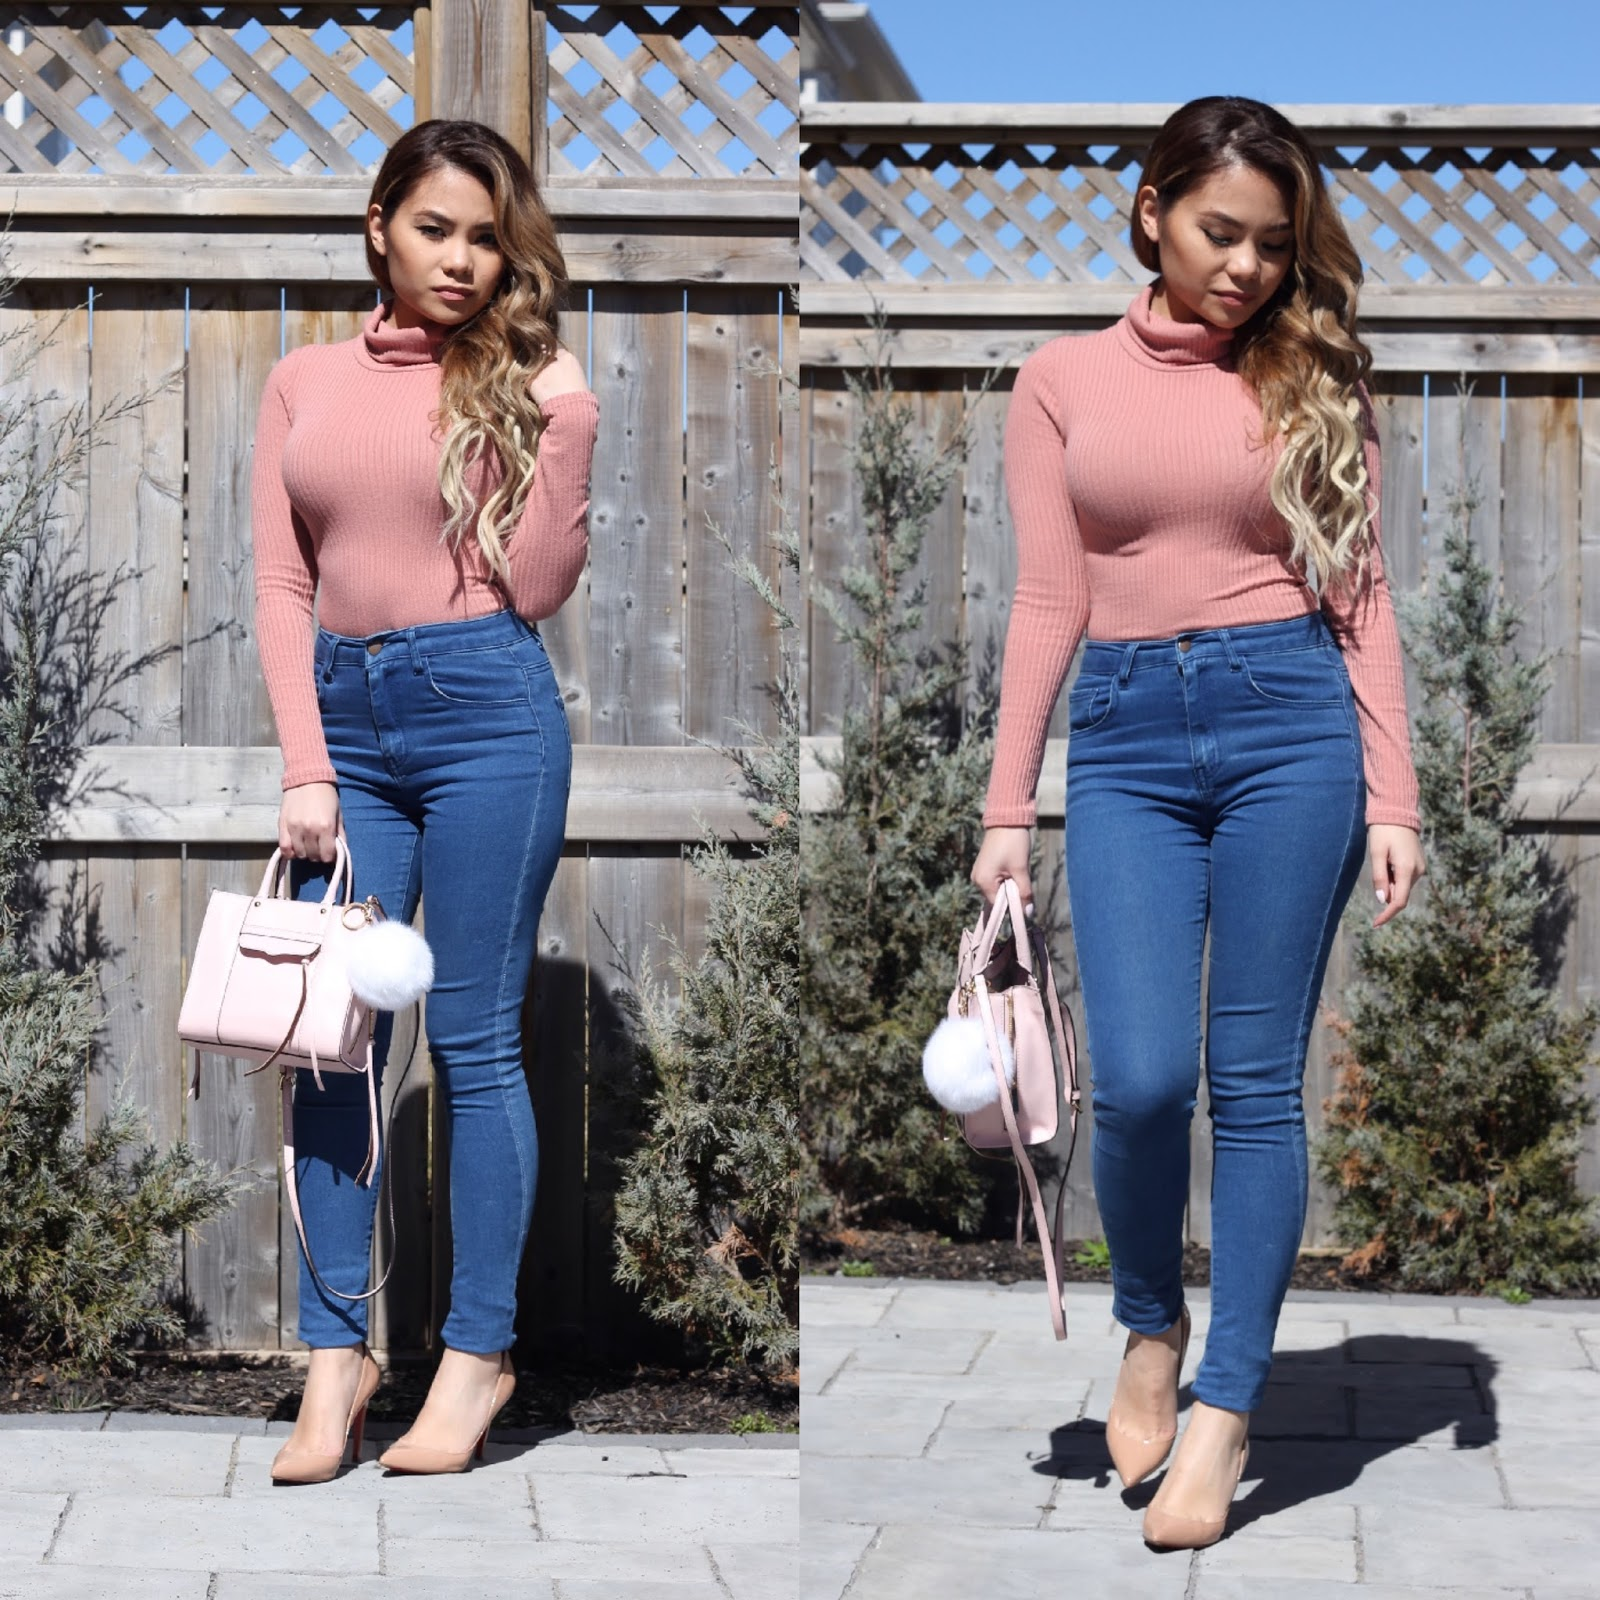 BLUSH X TURTLENECKS